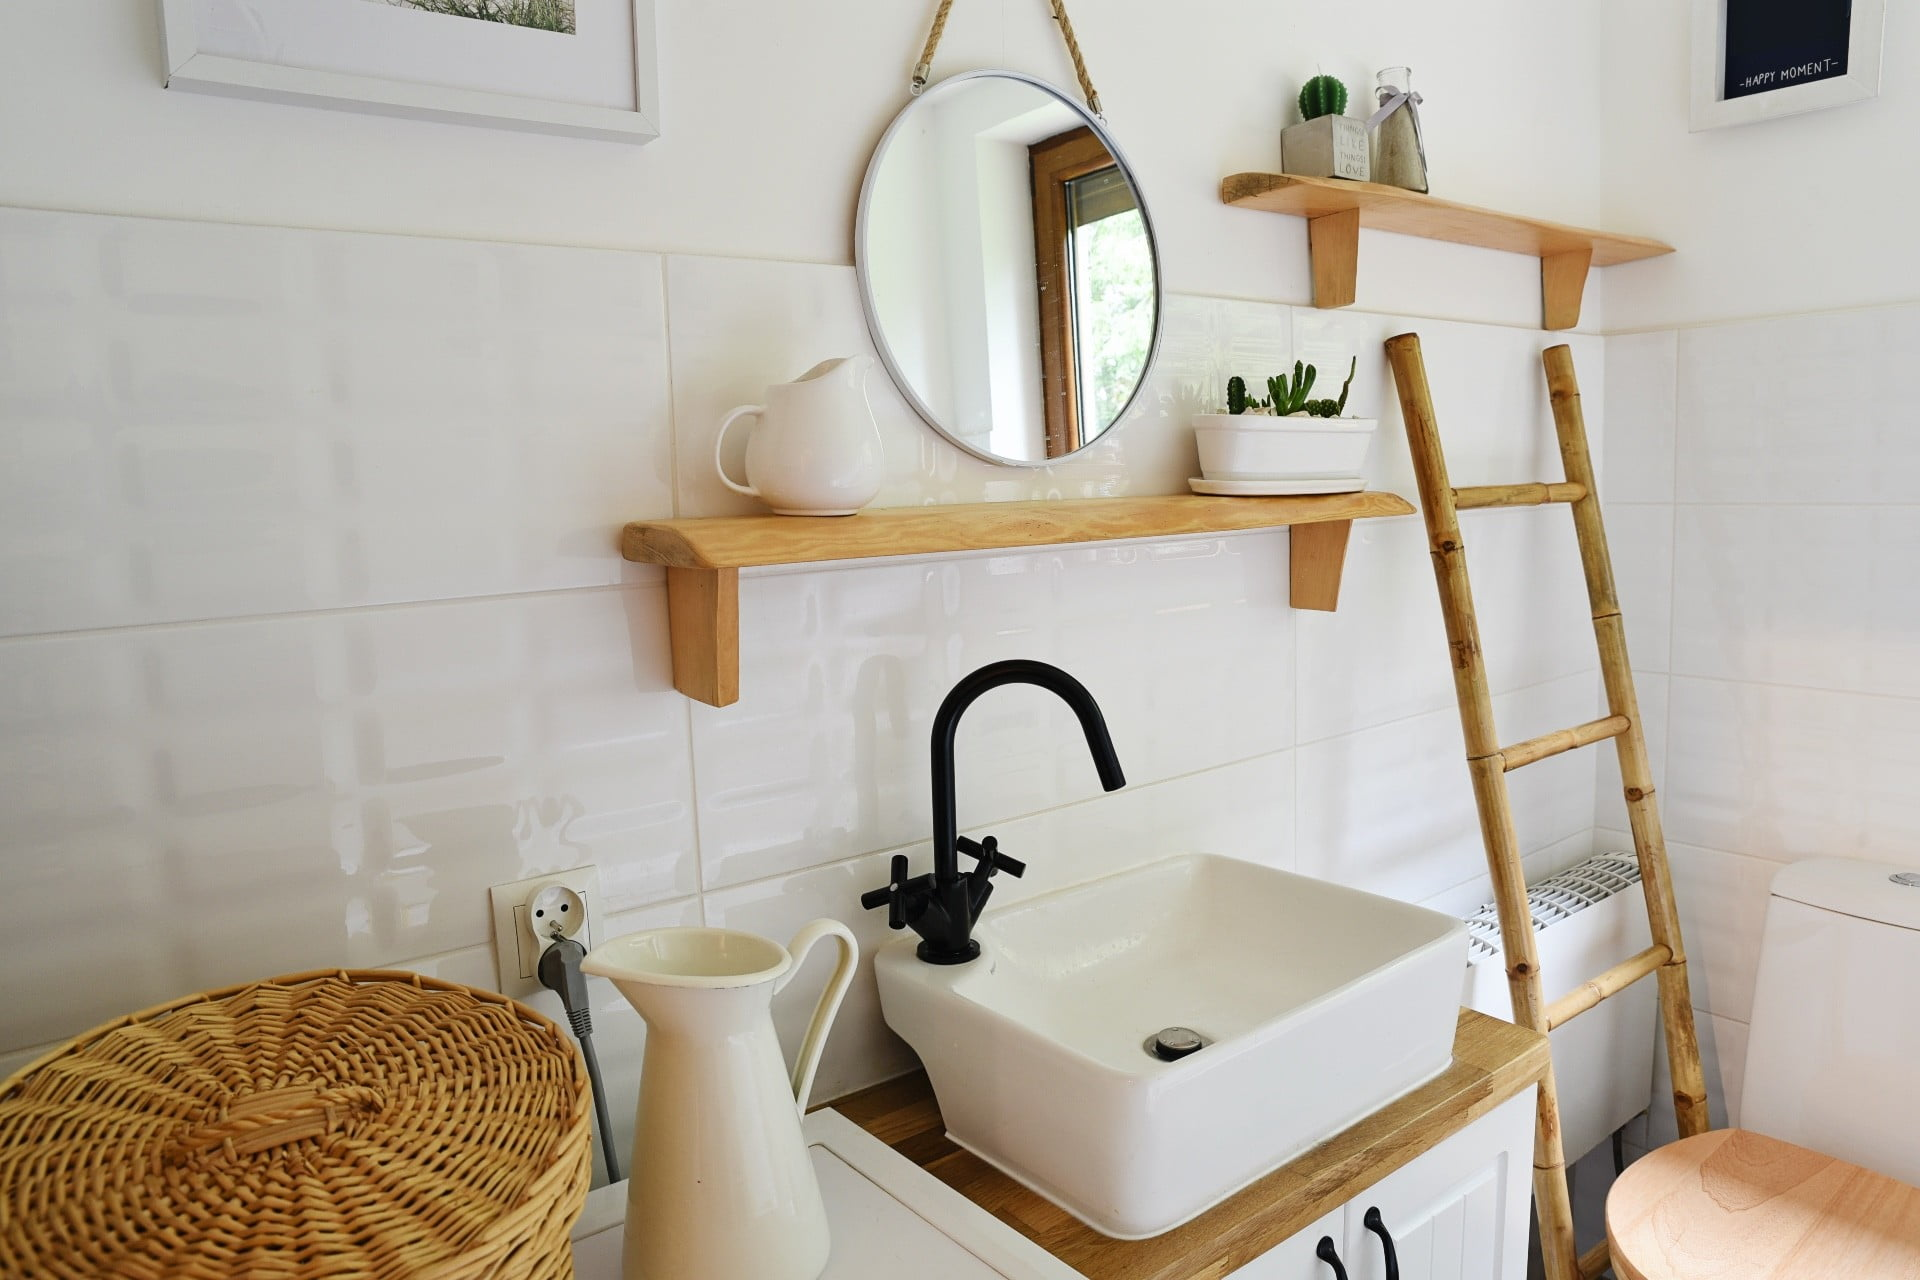 vintage bathroom with sink and shelves